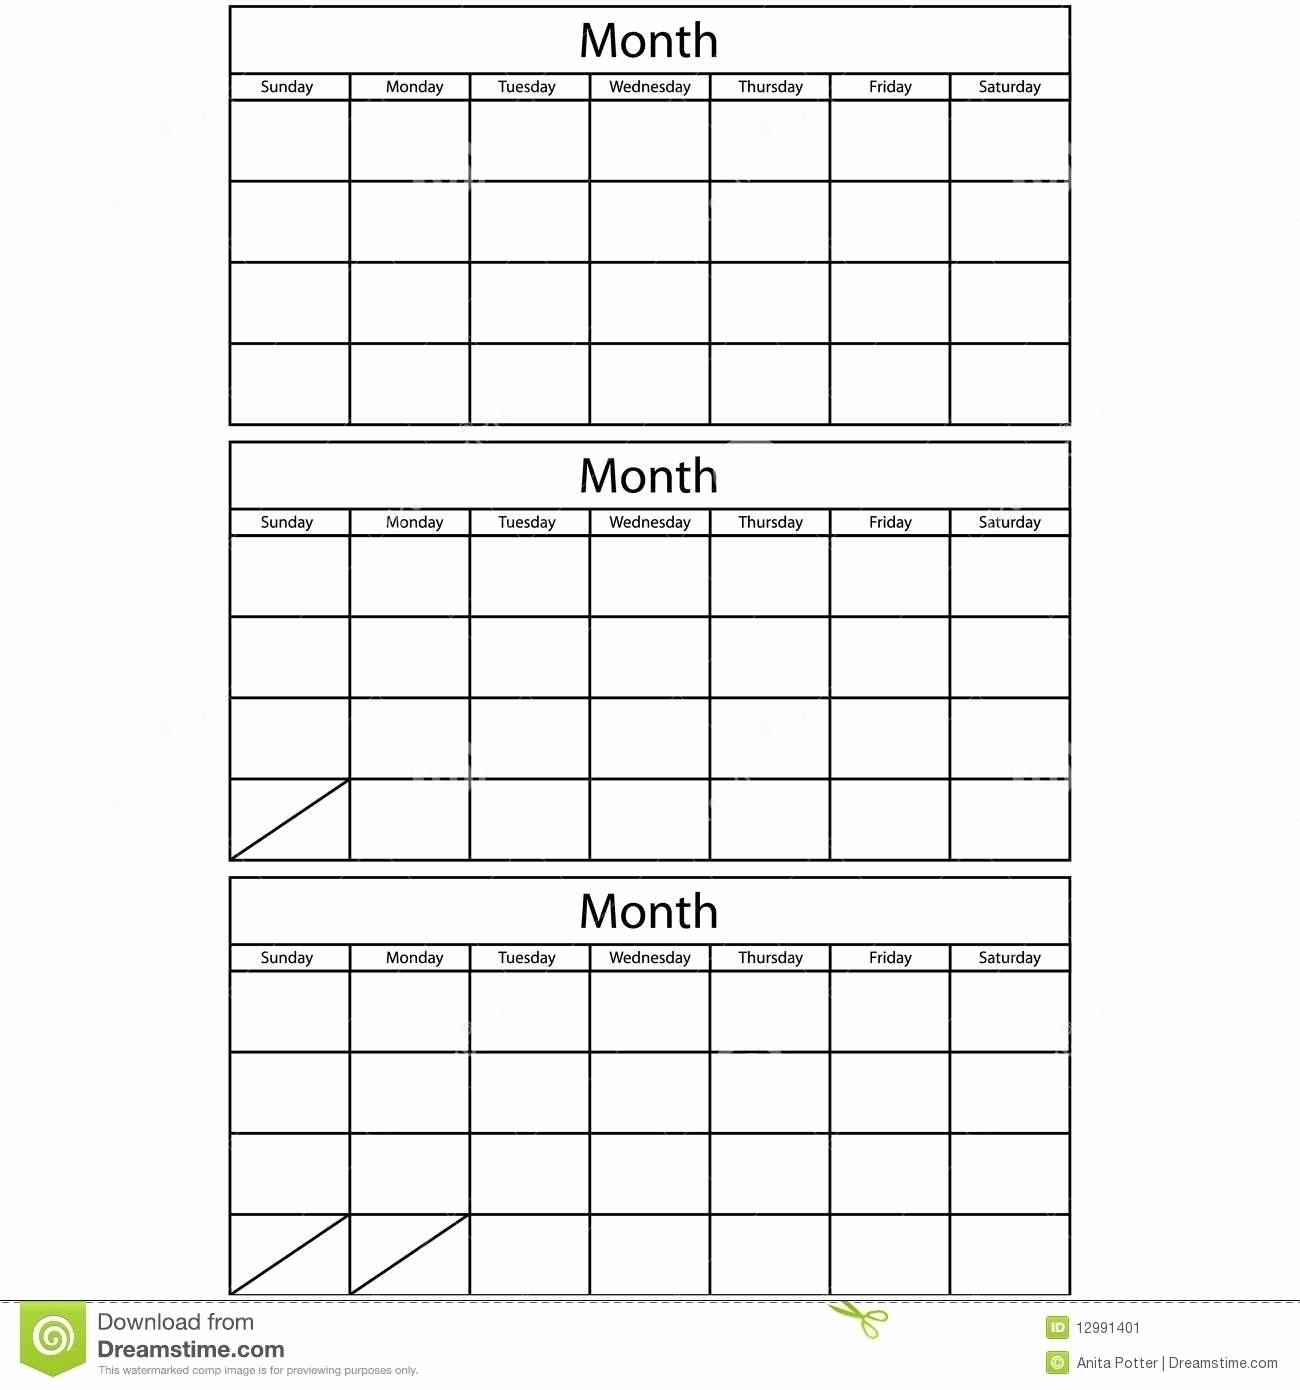 Free 3 Month Calendar Templates - Calendar Inspiration Design throughout Printable 3 Month Calendar Template